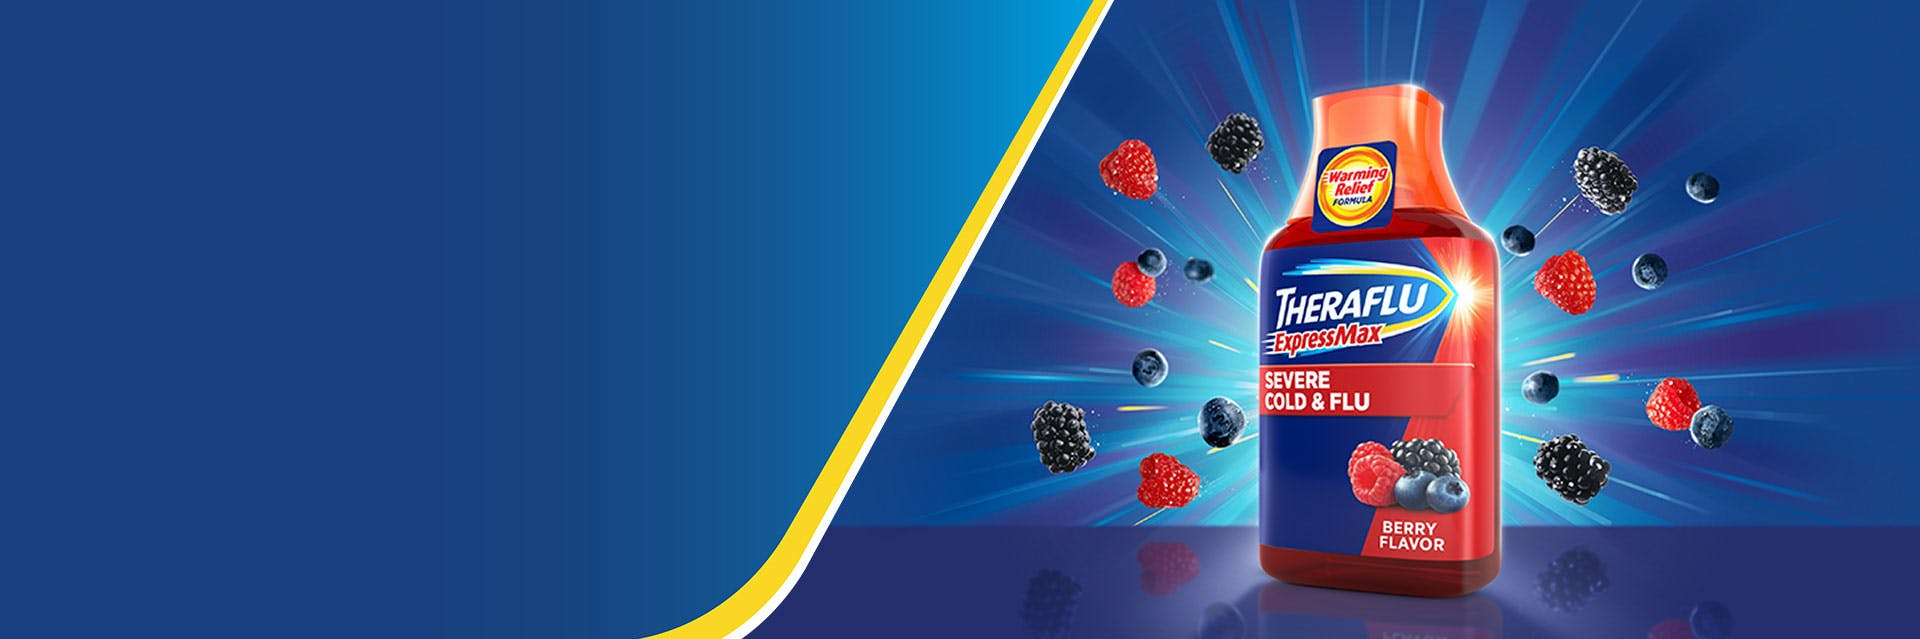 Bottle of Theraflu syrup and berries on blue background